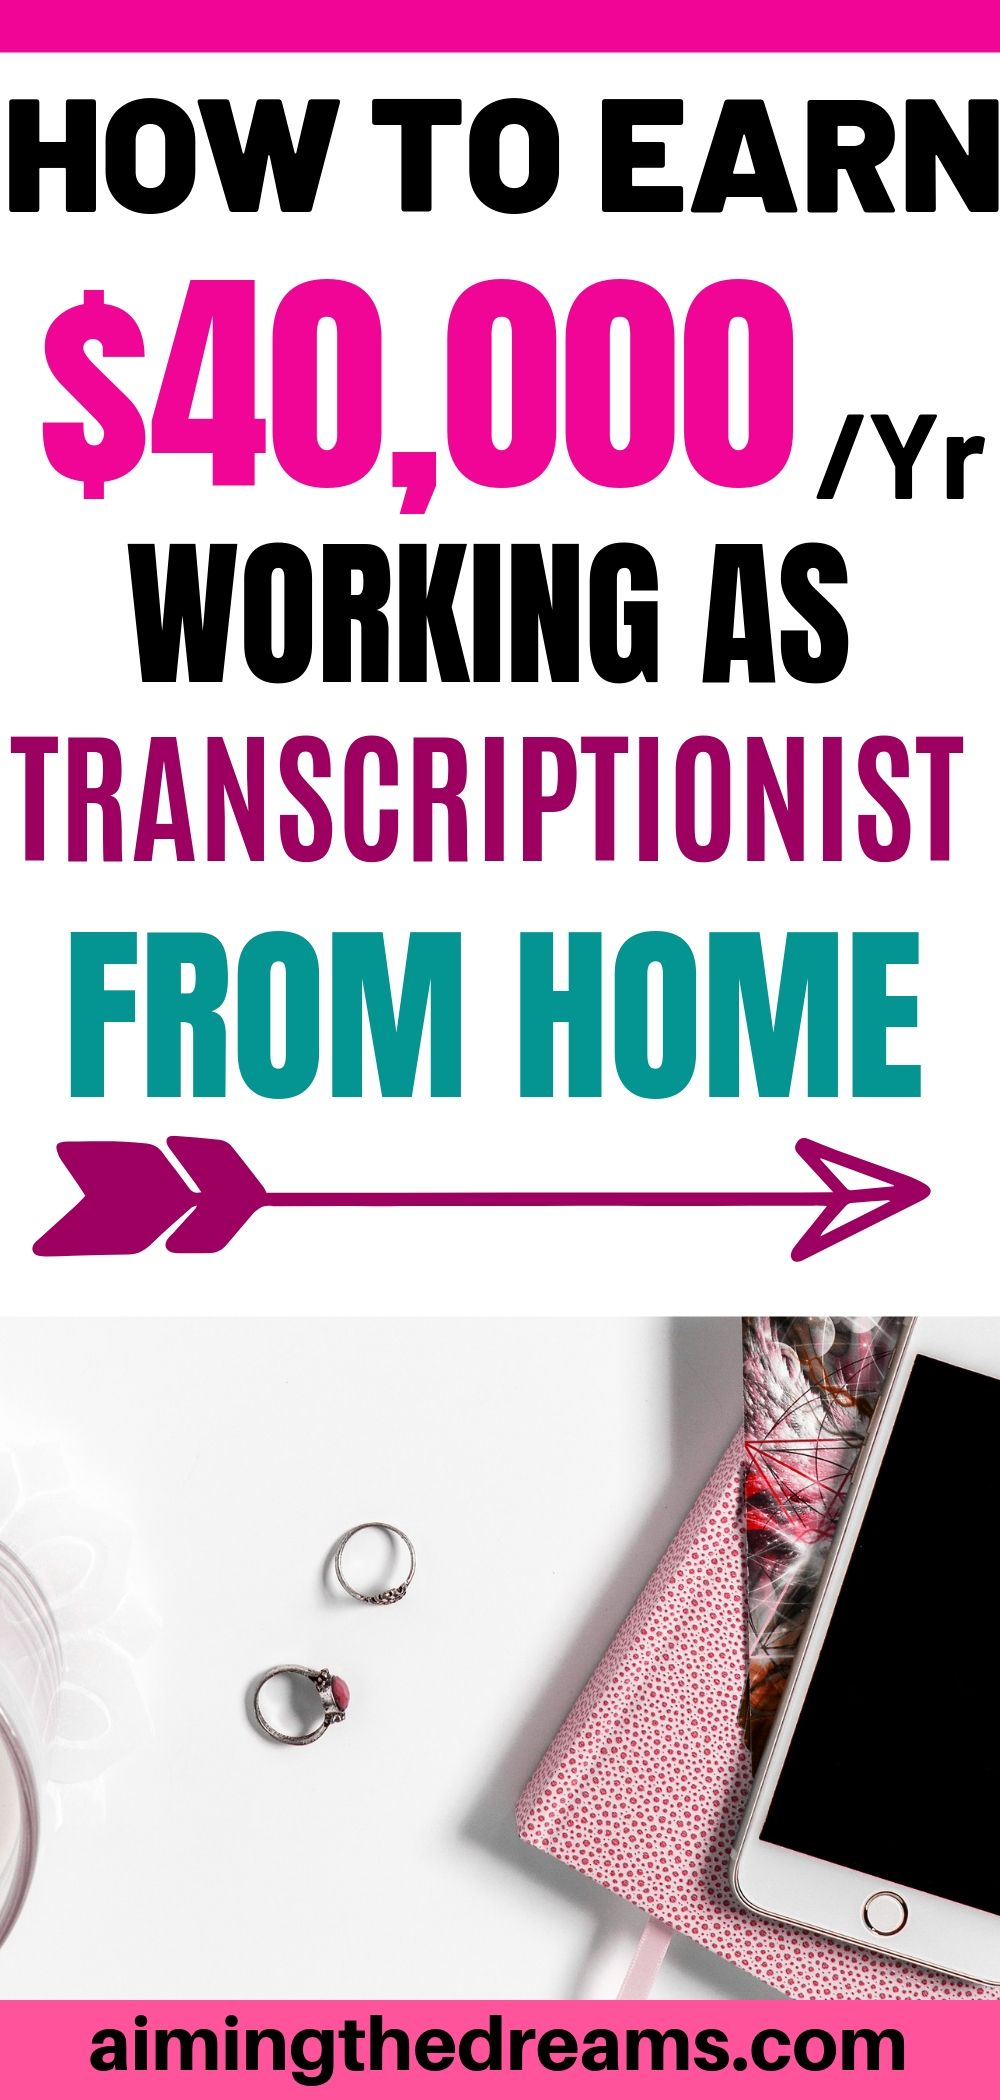 How to become a transccriptionist and earn $40,000 a year